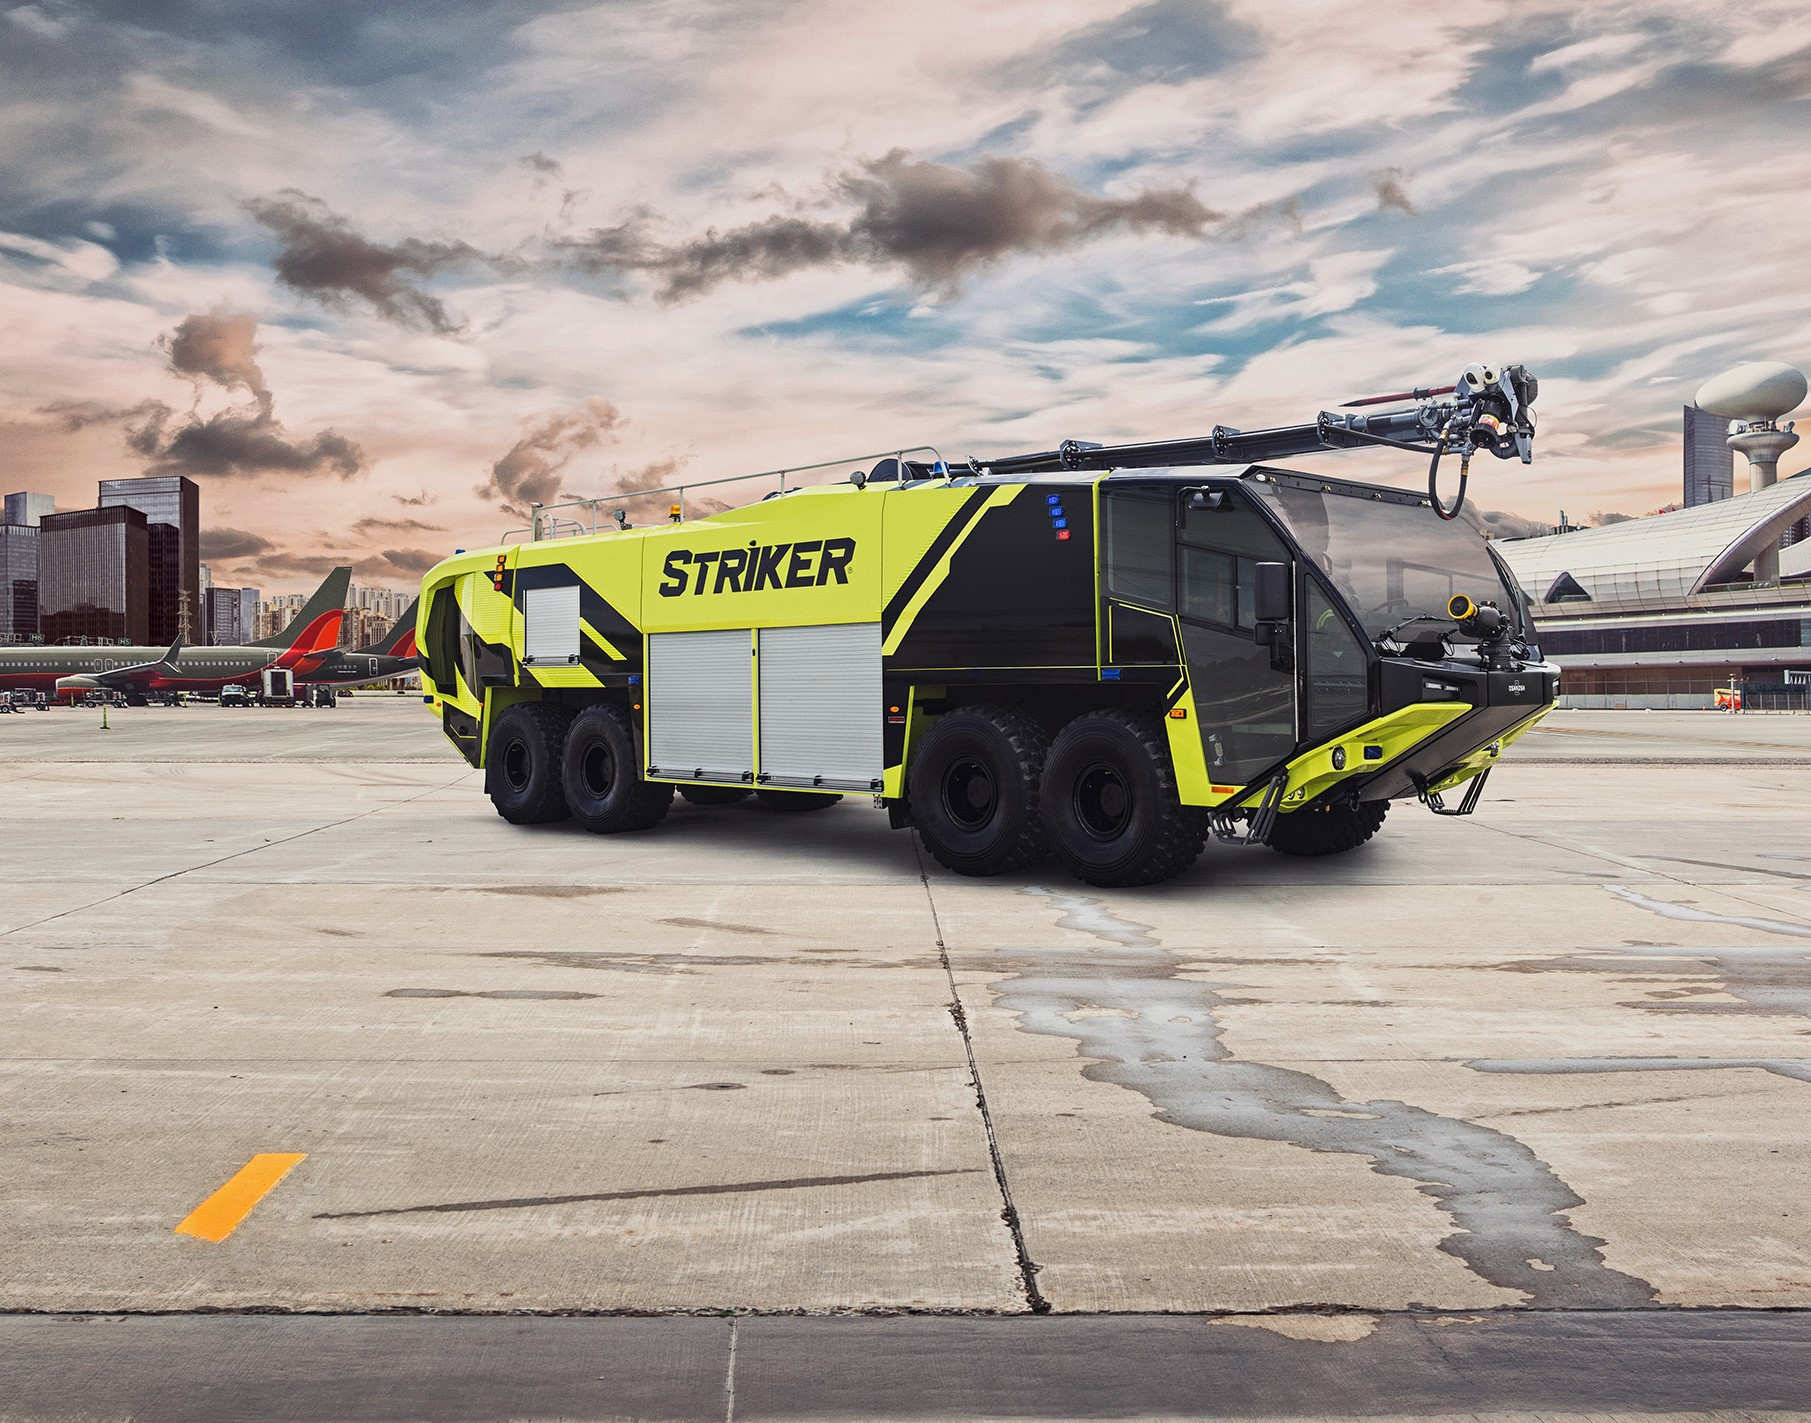 Oshkosh ARFF Striker 8x8